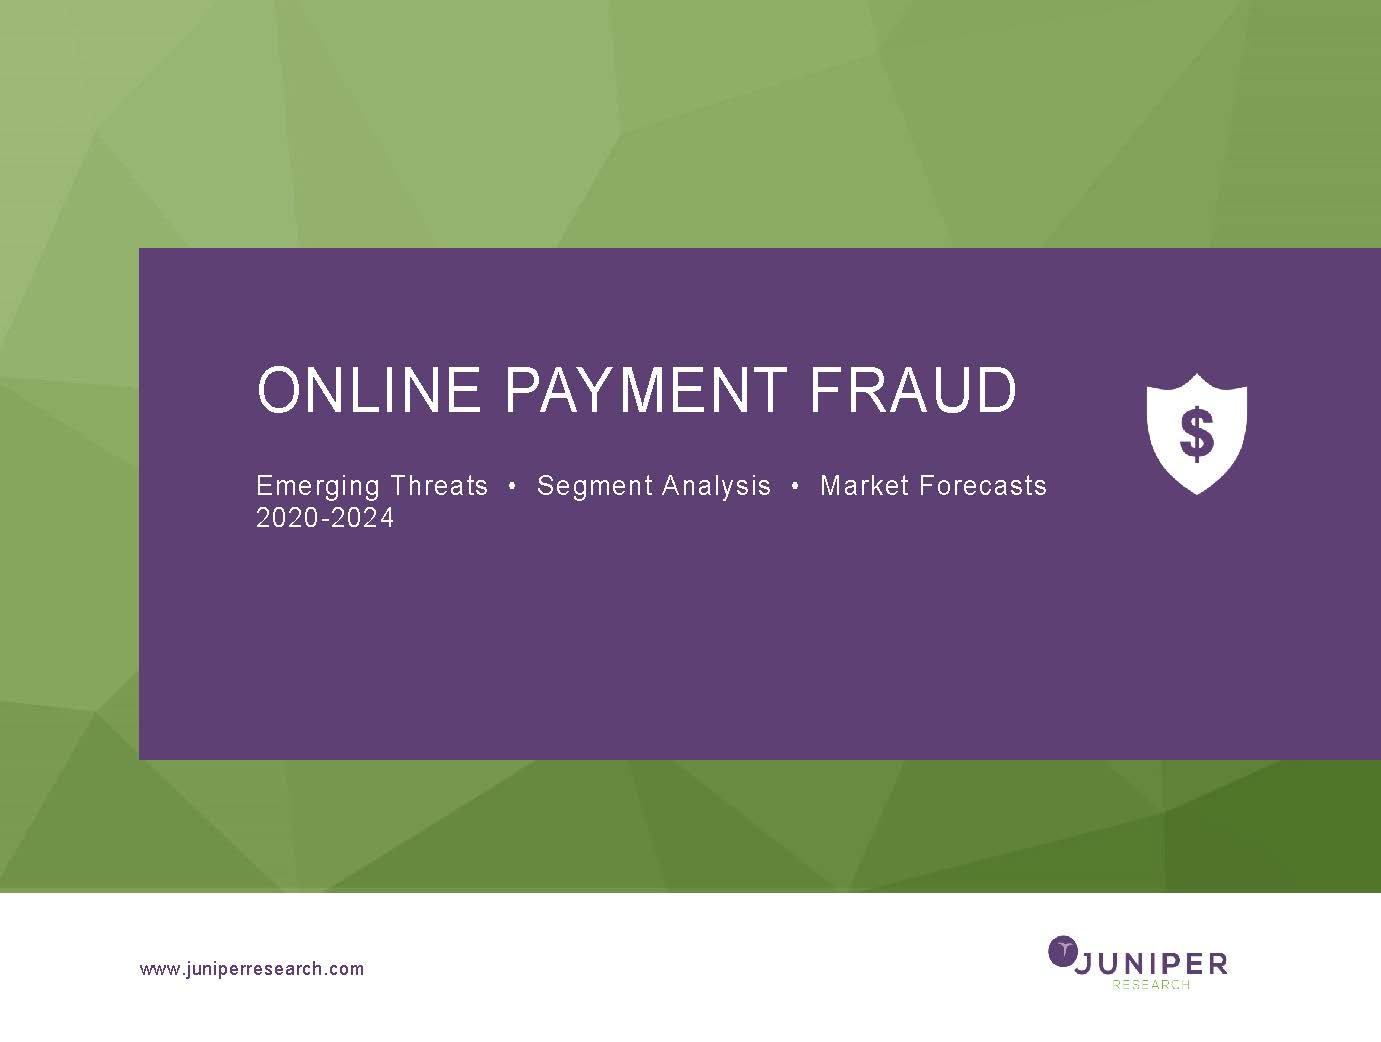 Online Payment Fraud Market Report Fintech Payments